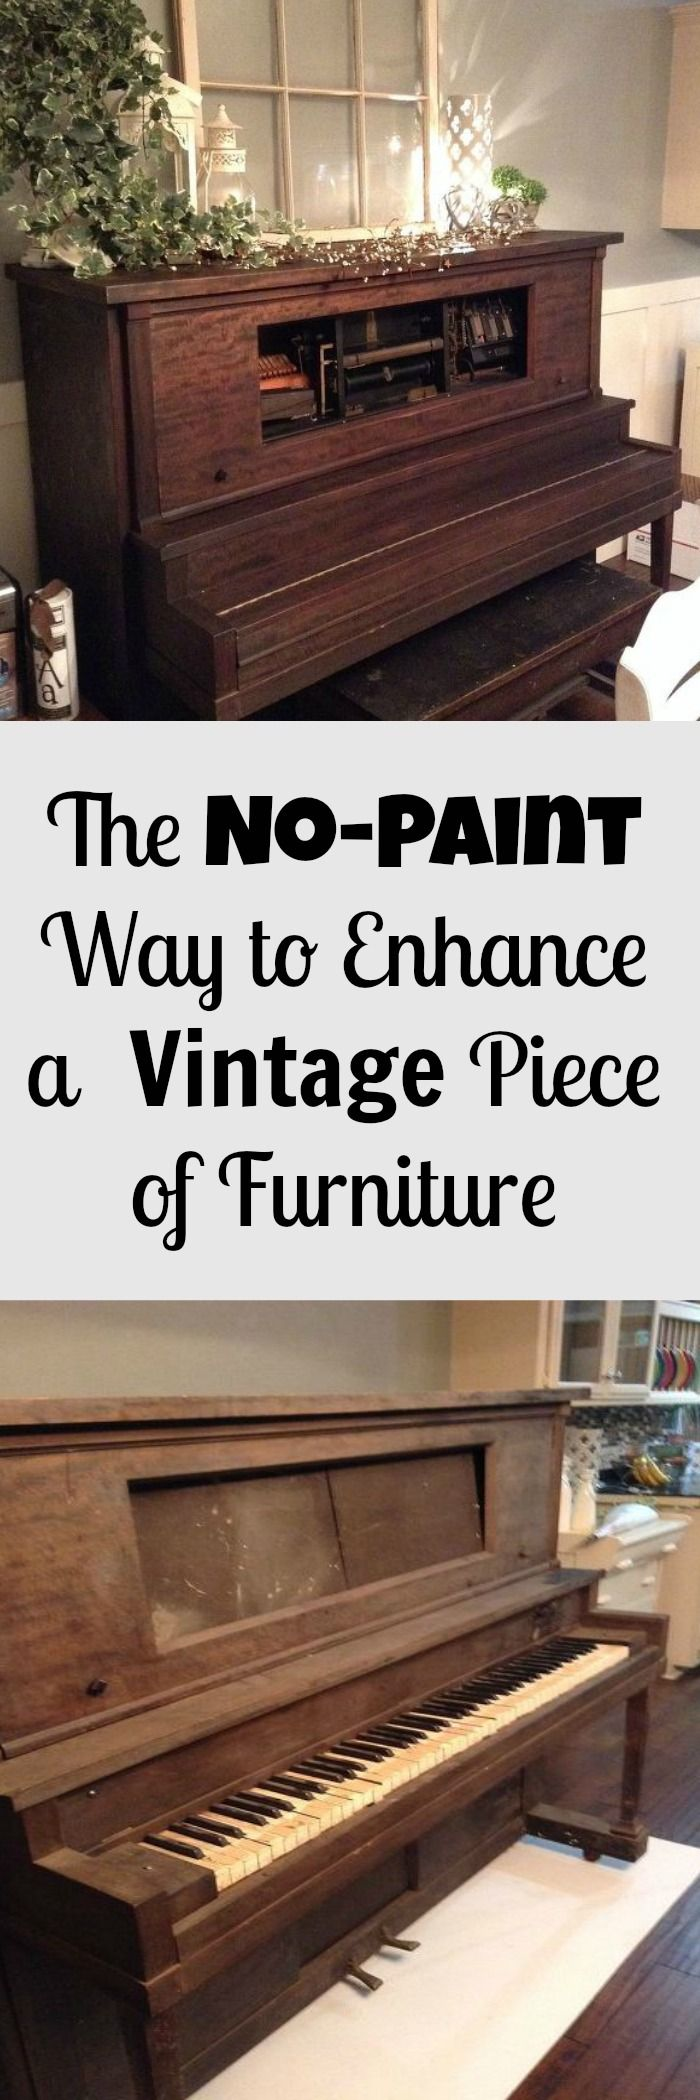 Best 25+ Refinish piano ideas on Pinterest | Painted pianos, Piano ...